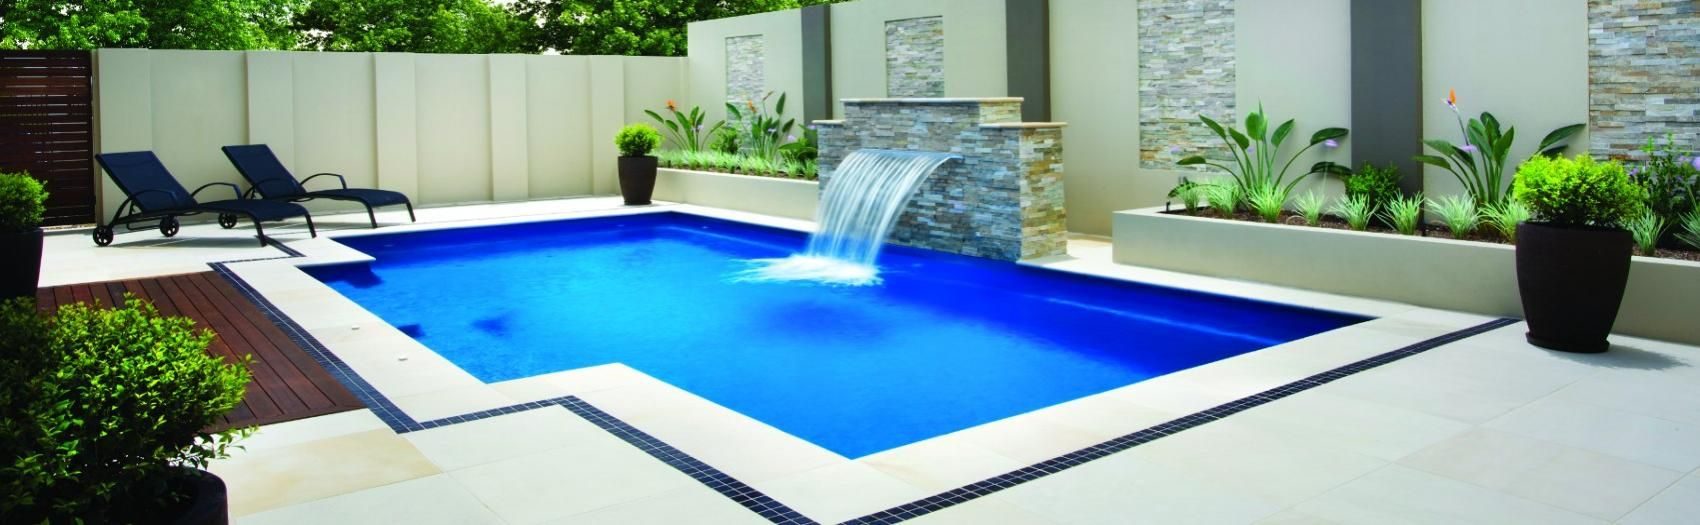 1000+ ideas about Fiberglass Pools For Sale on Pinterest | Small pool ideas,  Small inground pool and Inground pool